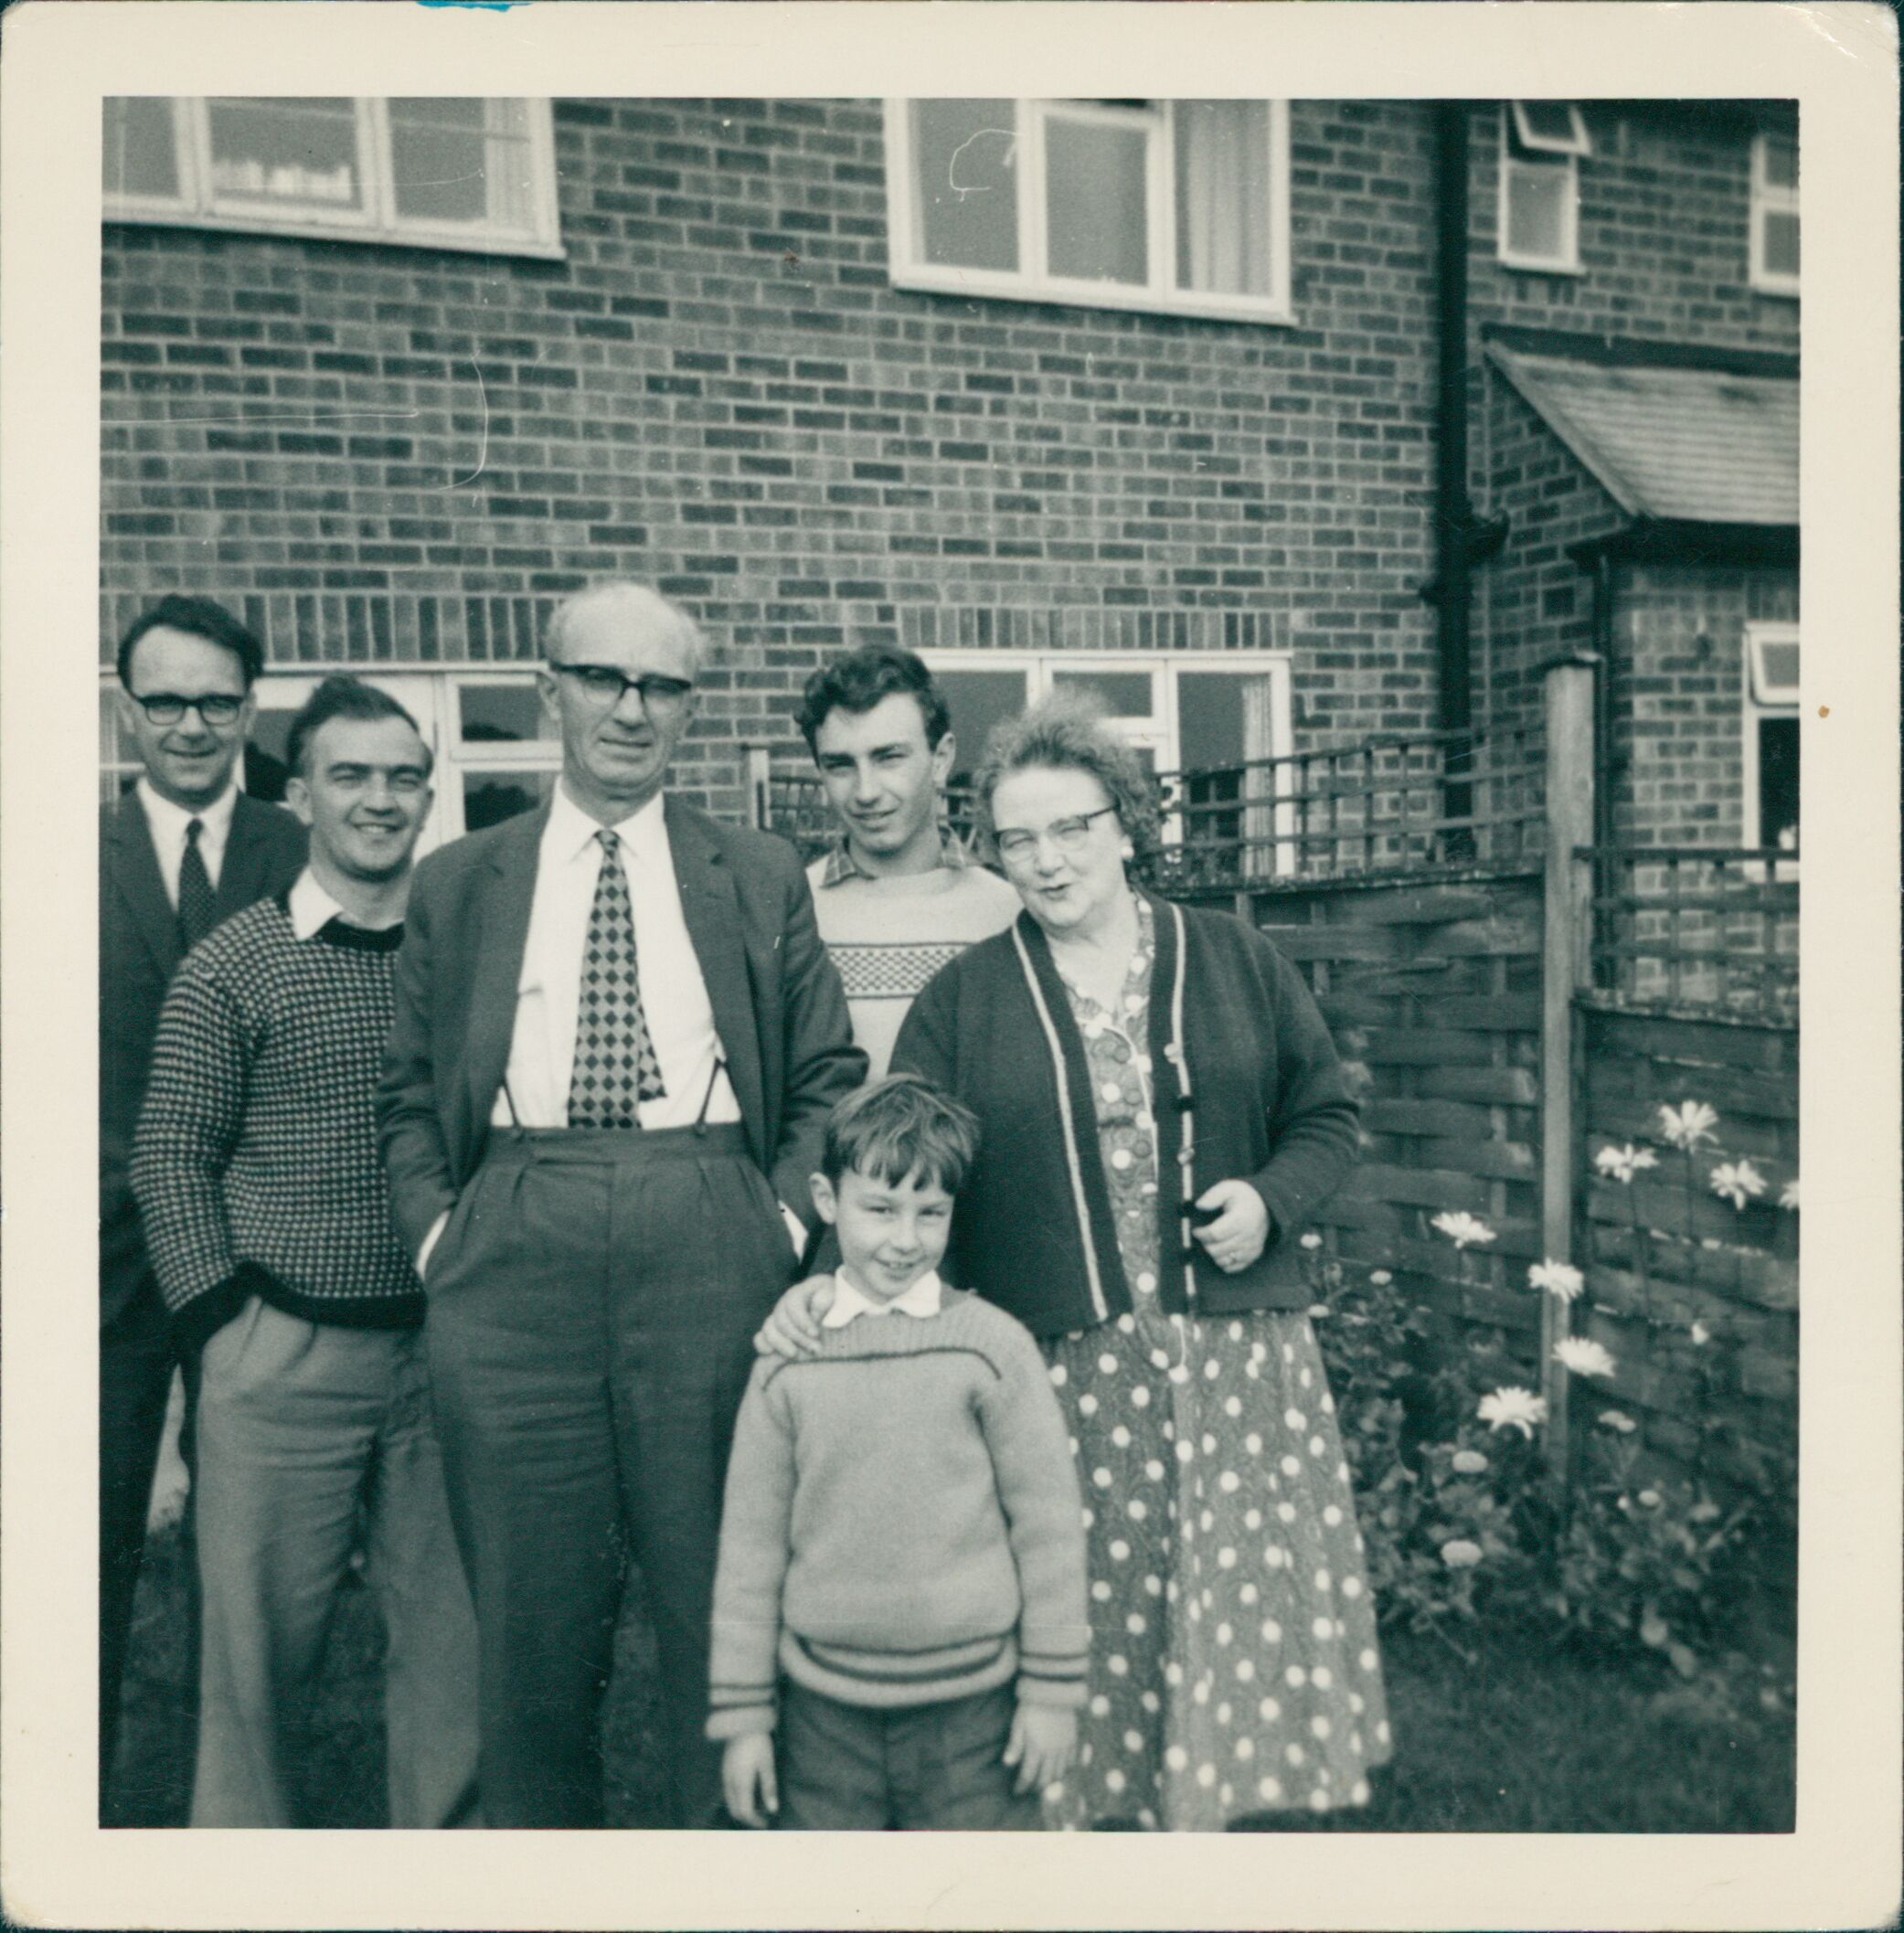 Scanned photo depicting a family posing for a photograph in their garden.